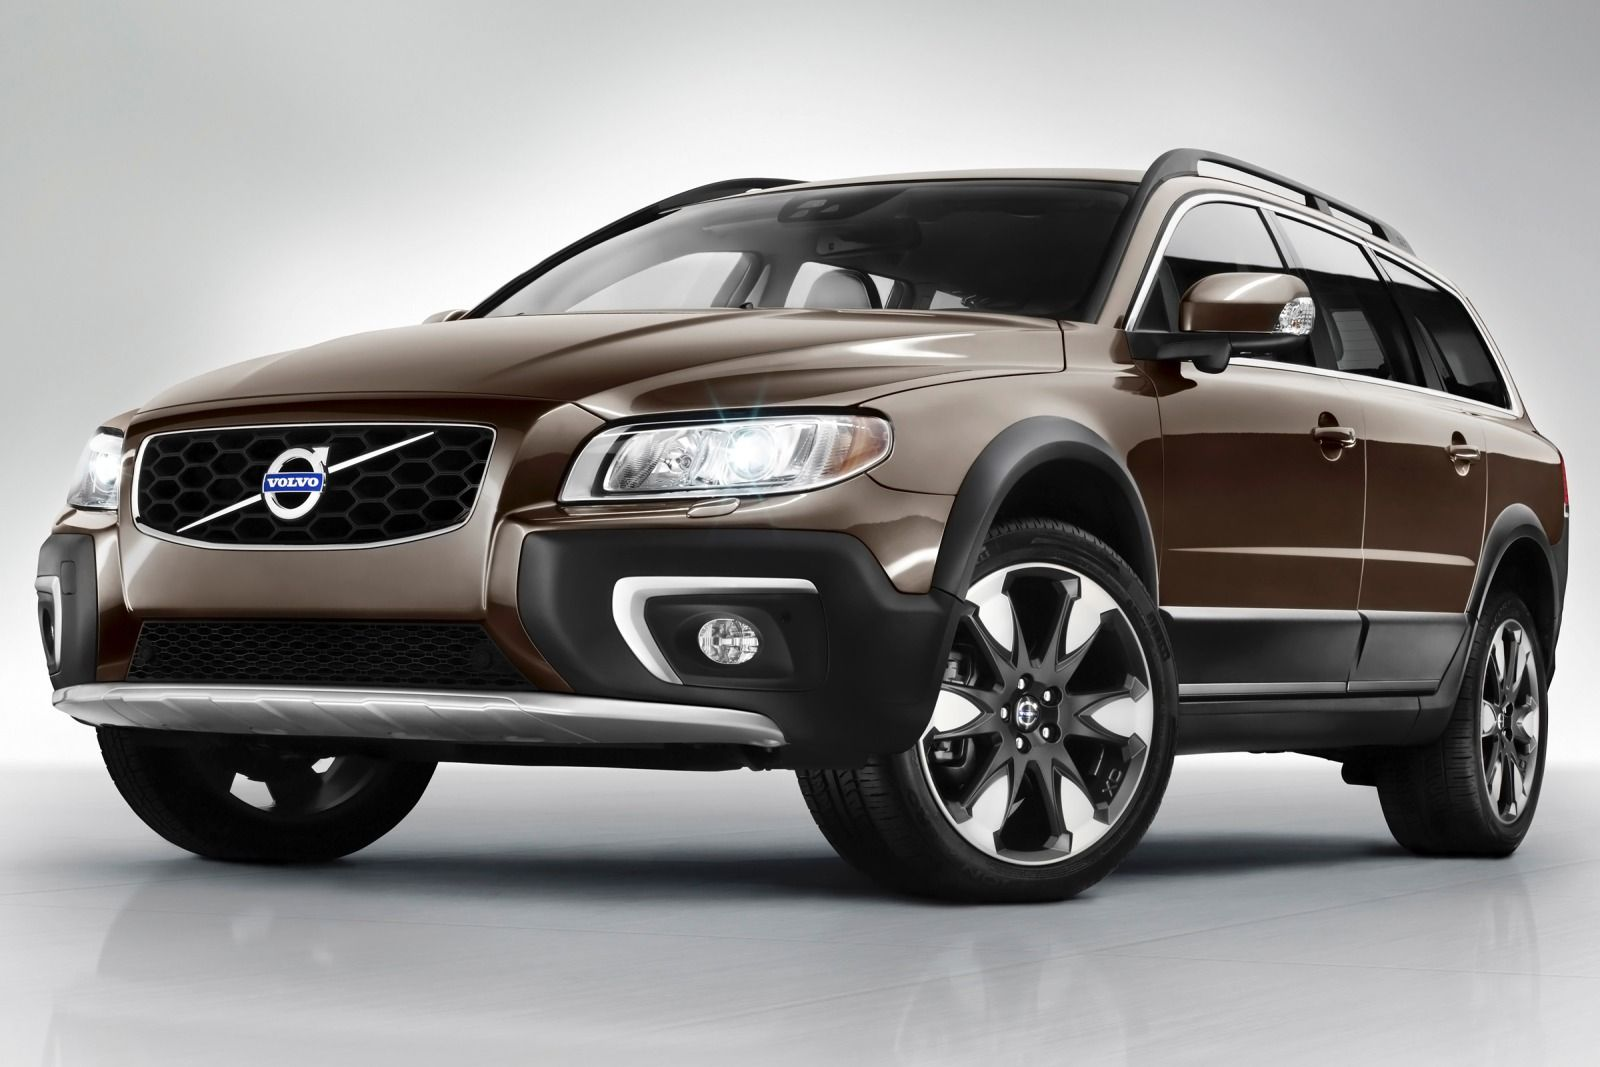 2016 Volvo Xc70 Review Release Date And Price 2016 2017 Best Car Reviews Volvo Volvo V70 Volvo Xc